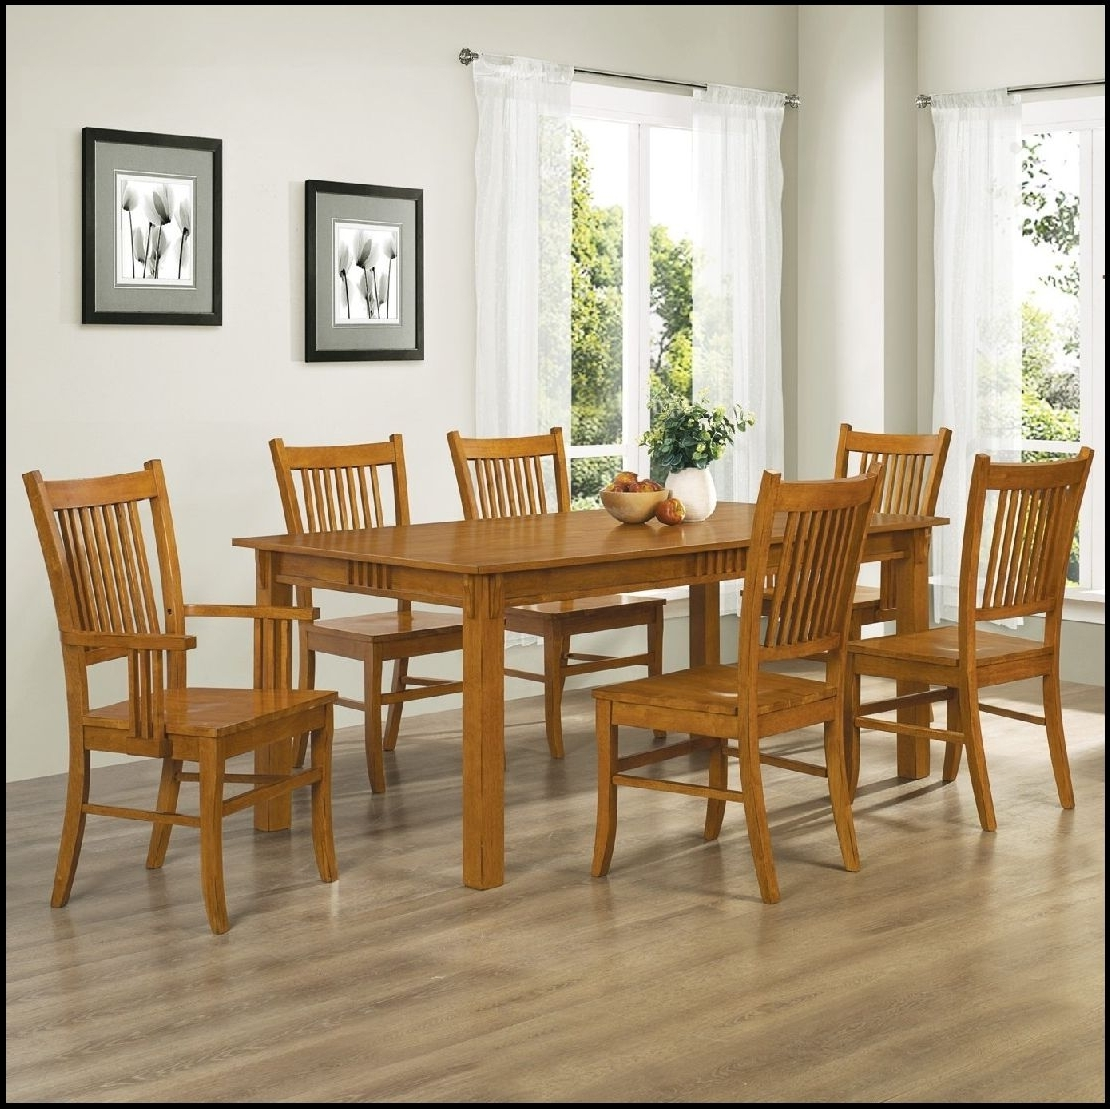 Dining Tables And Chairs Sets intended for Popular Great Dining Table And Chair Sets Luxury With Photos Of Dining Table